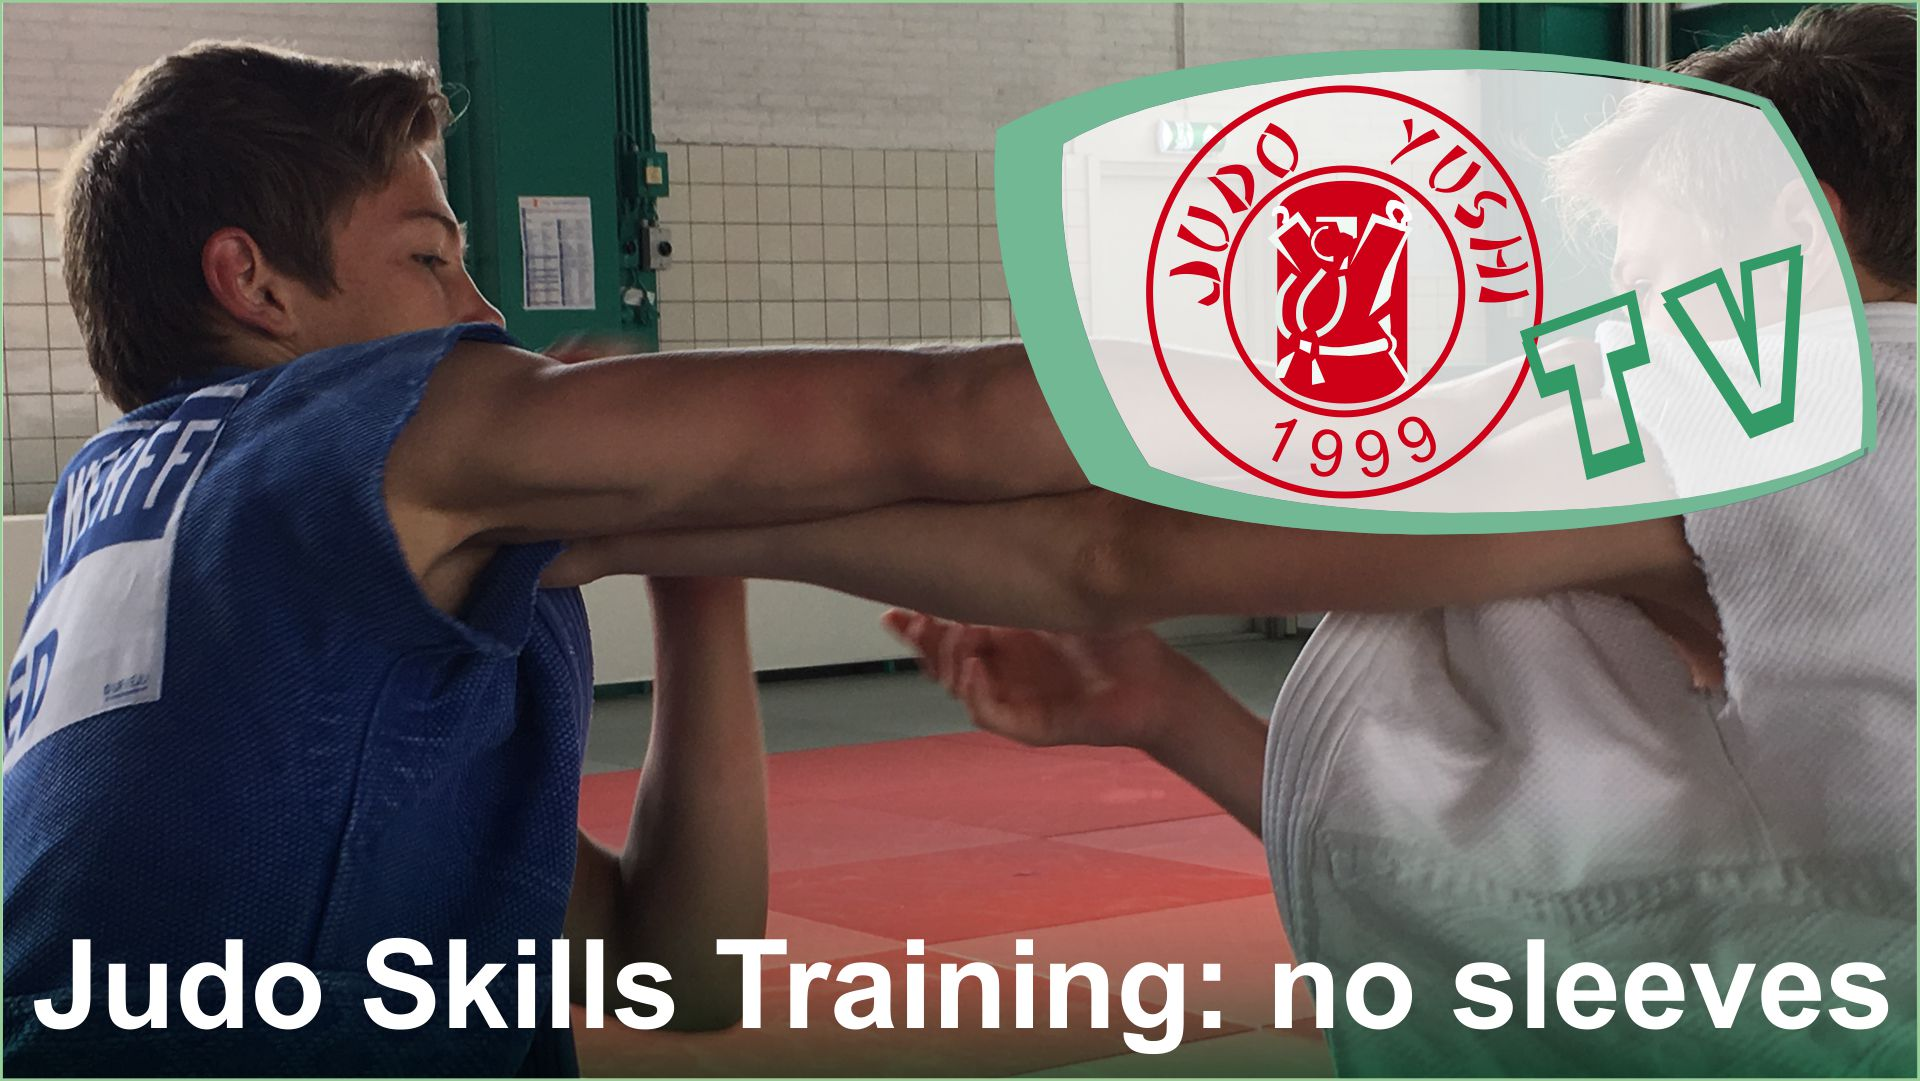 JUDO SKILLS TRAINING 'NO SLEEVES'